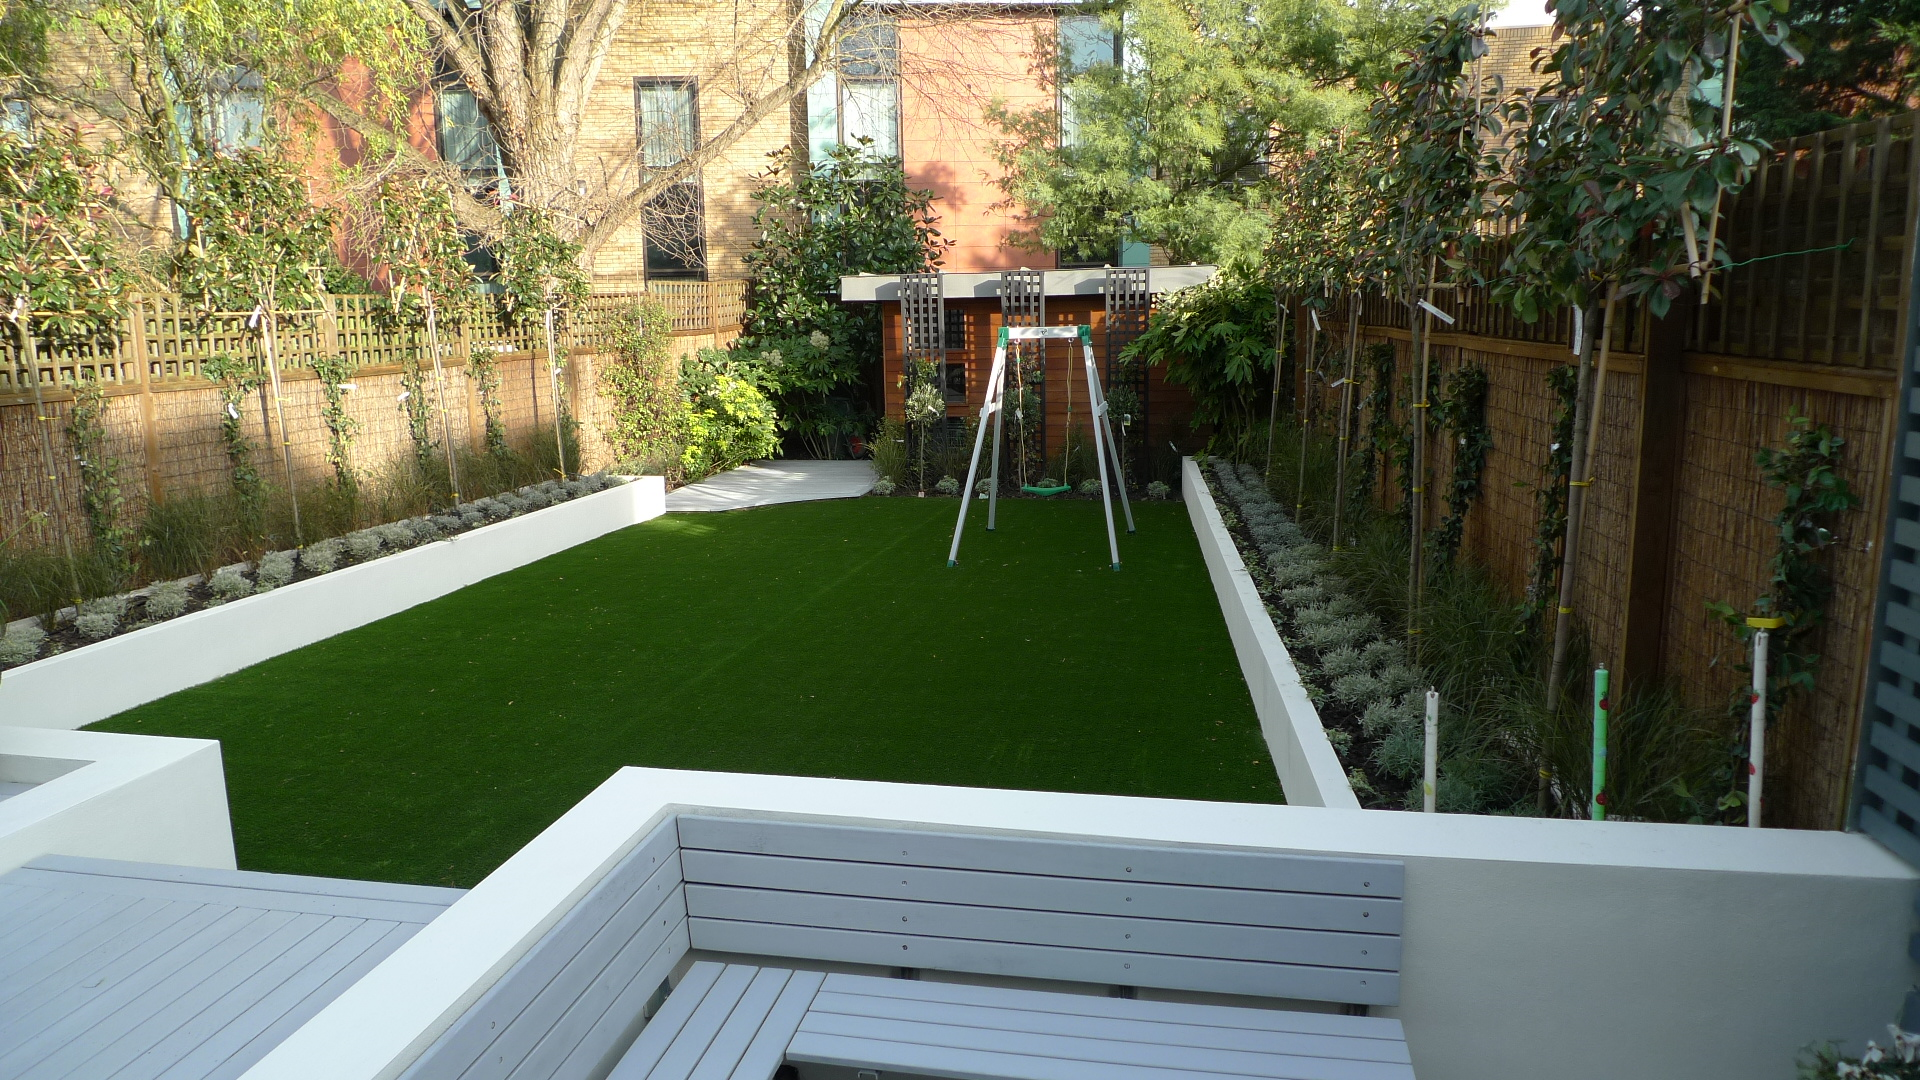 Modern garden design ideas london london garden design for Garden ideas images